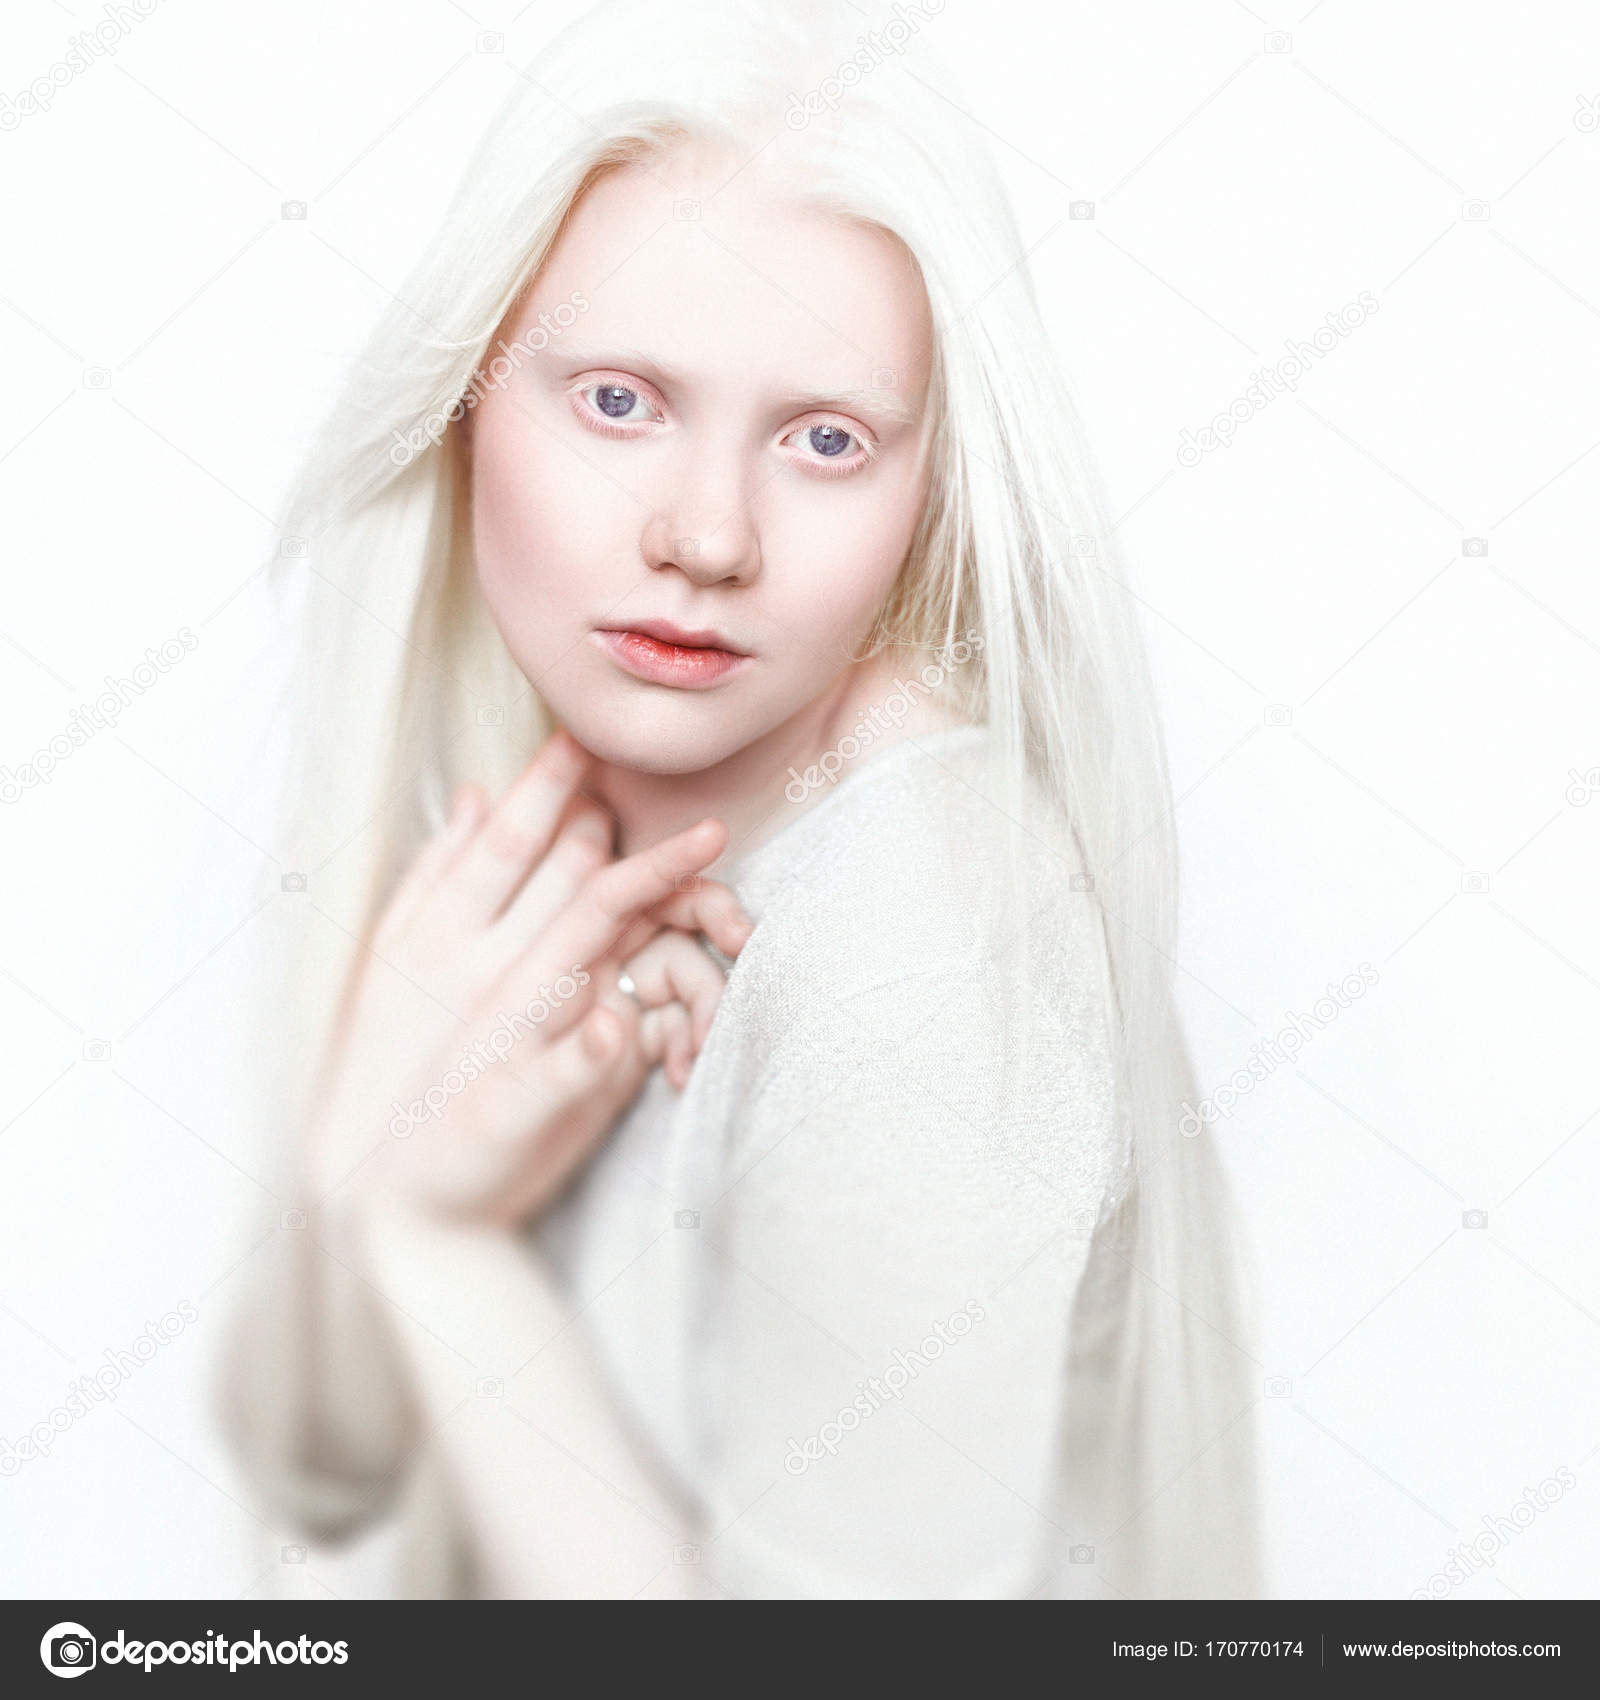 albino queen girl with white skin natural lips and white